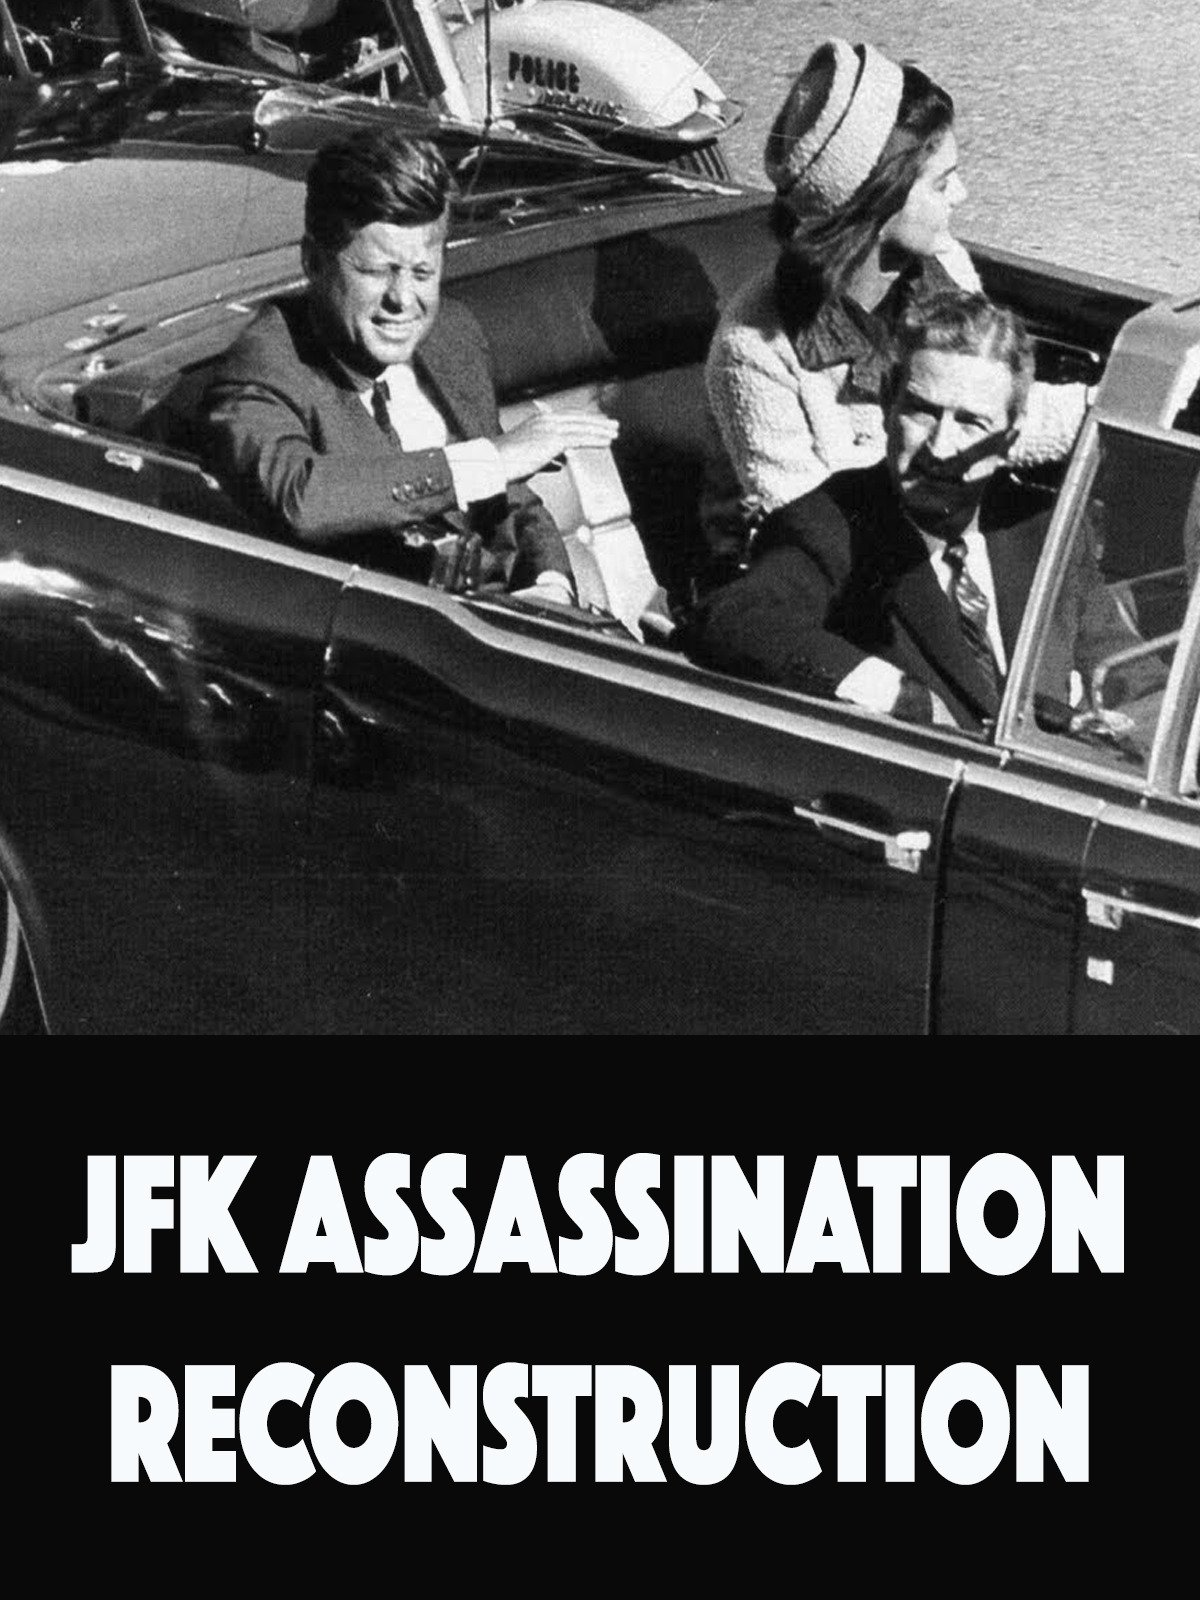 JFK Assassination Reconstruction